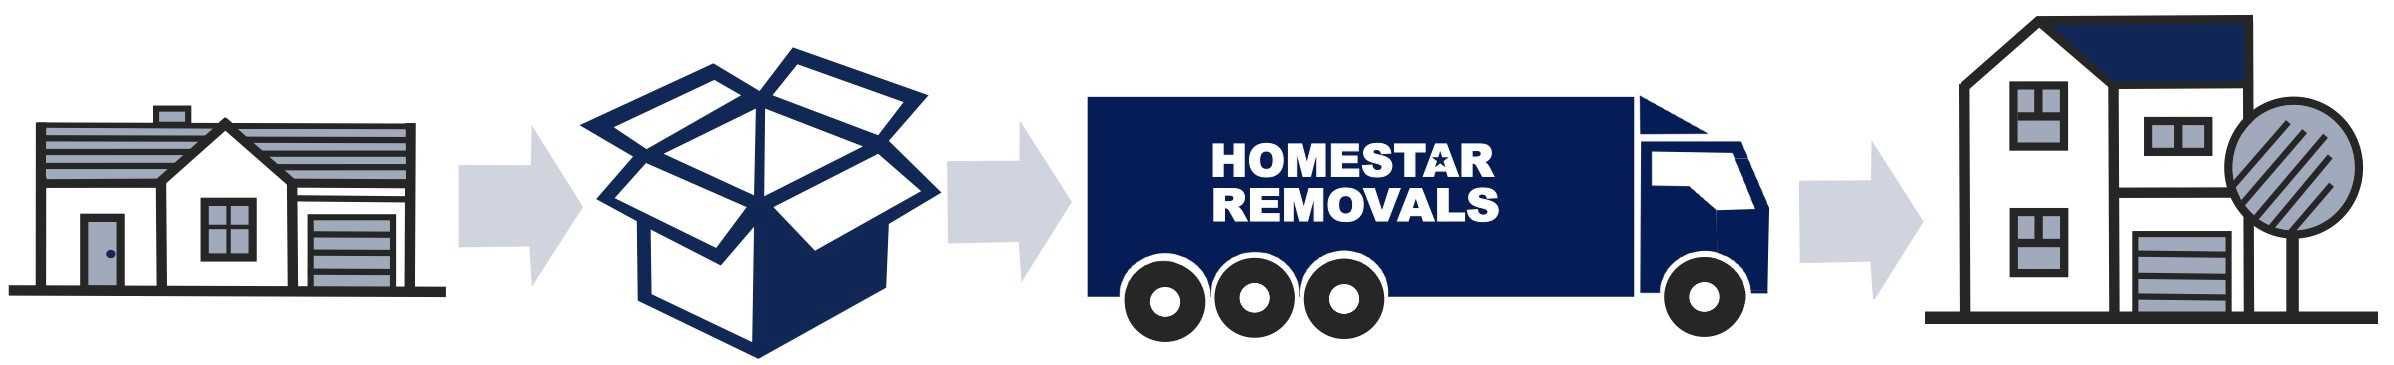 Professional removal services Uxbridge